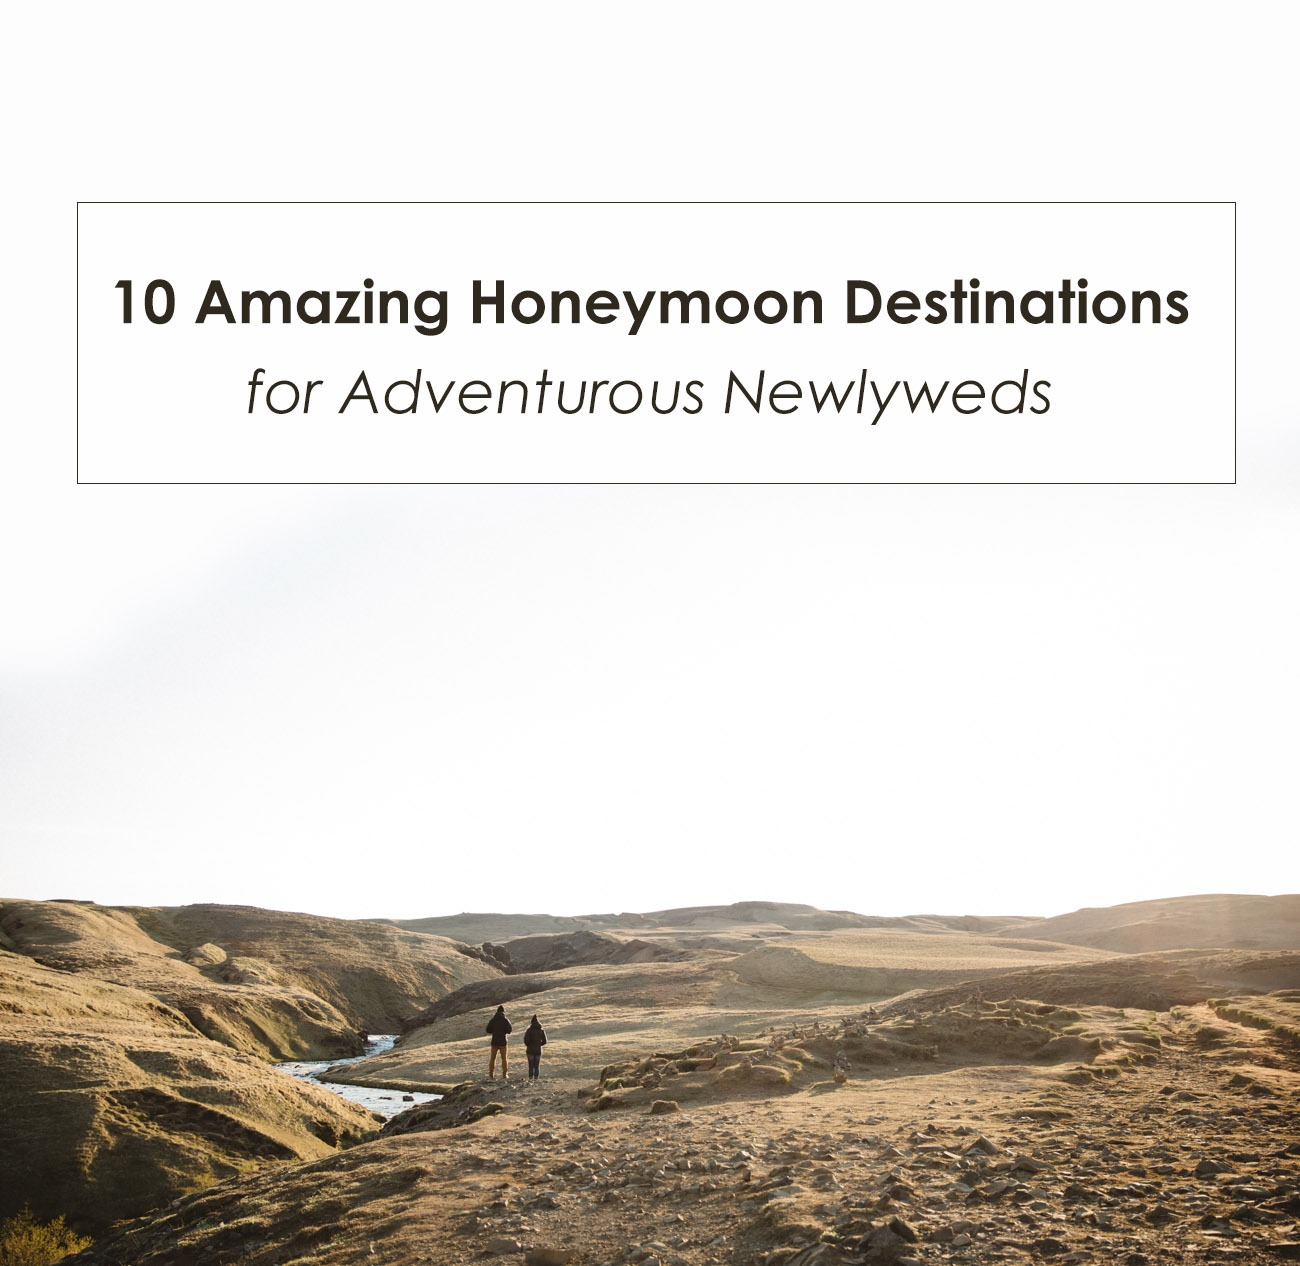 10 Amazing Honeymoon Destinations for Adventurous Newlyweds